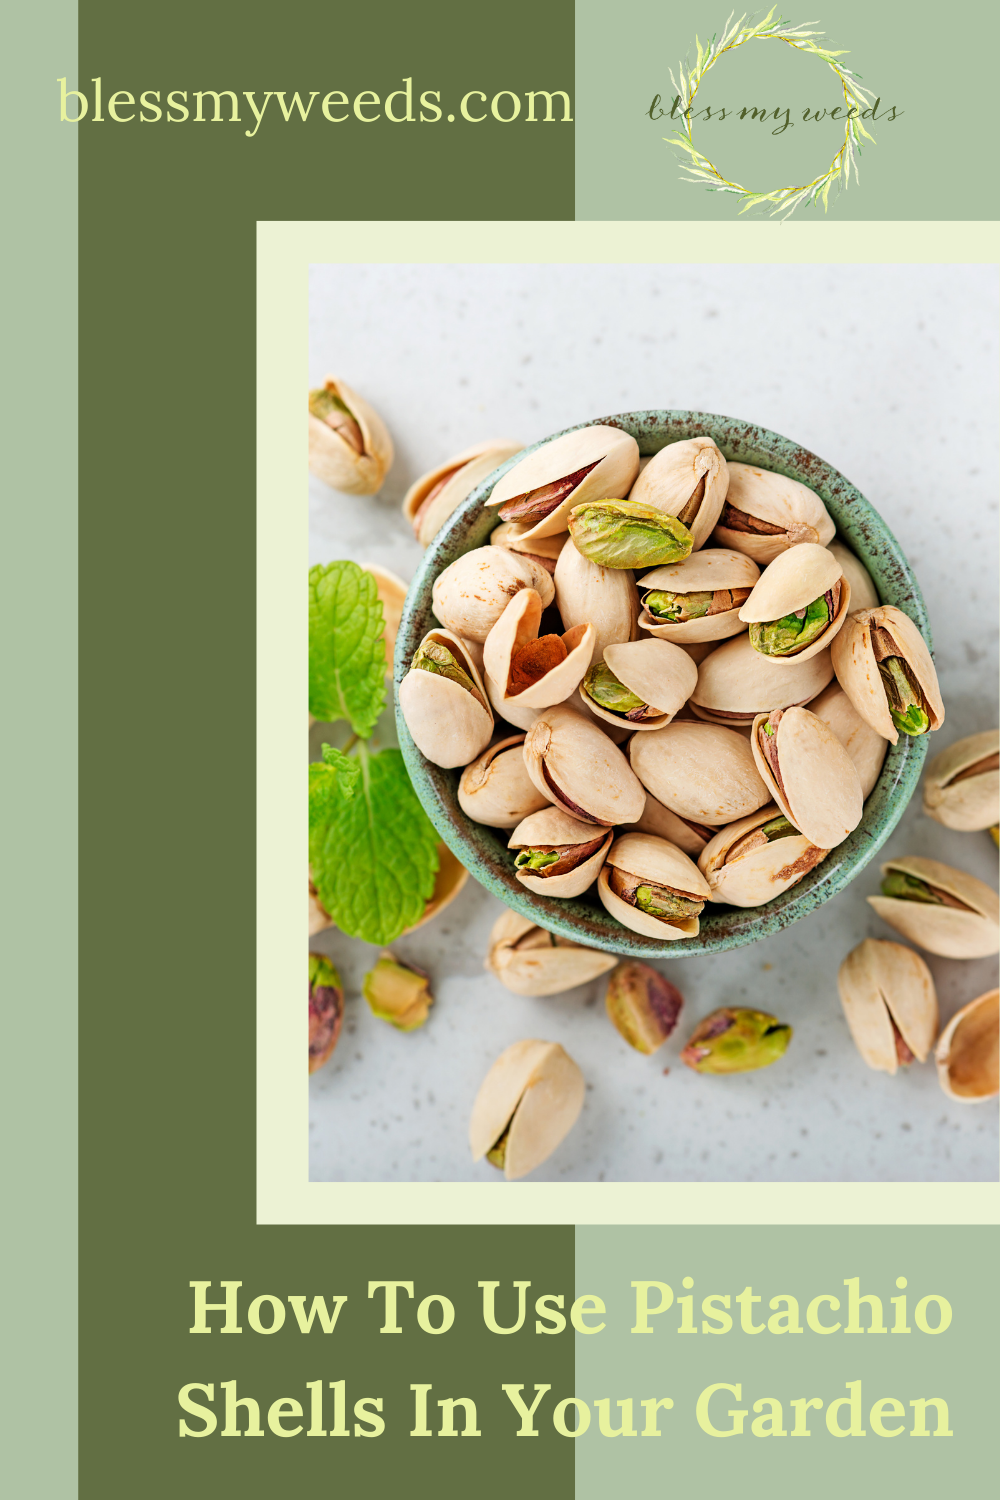 Blessmyweeds.com makes keeping healthy plants easy for anyone! Learn what to grow and how to care for it. Find out all you need to know to use pistachio shells in your garden!